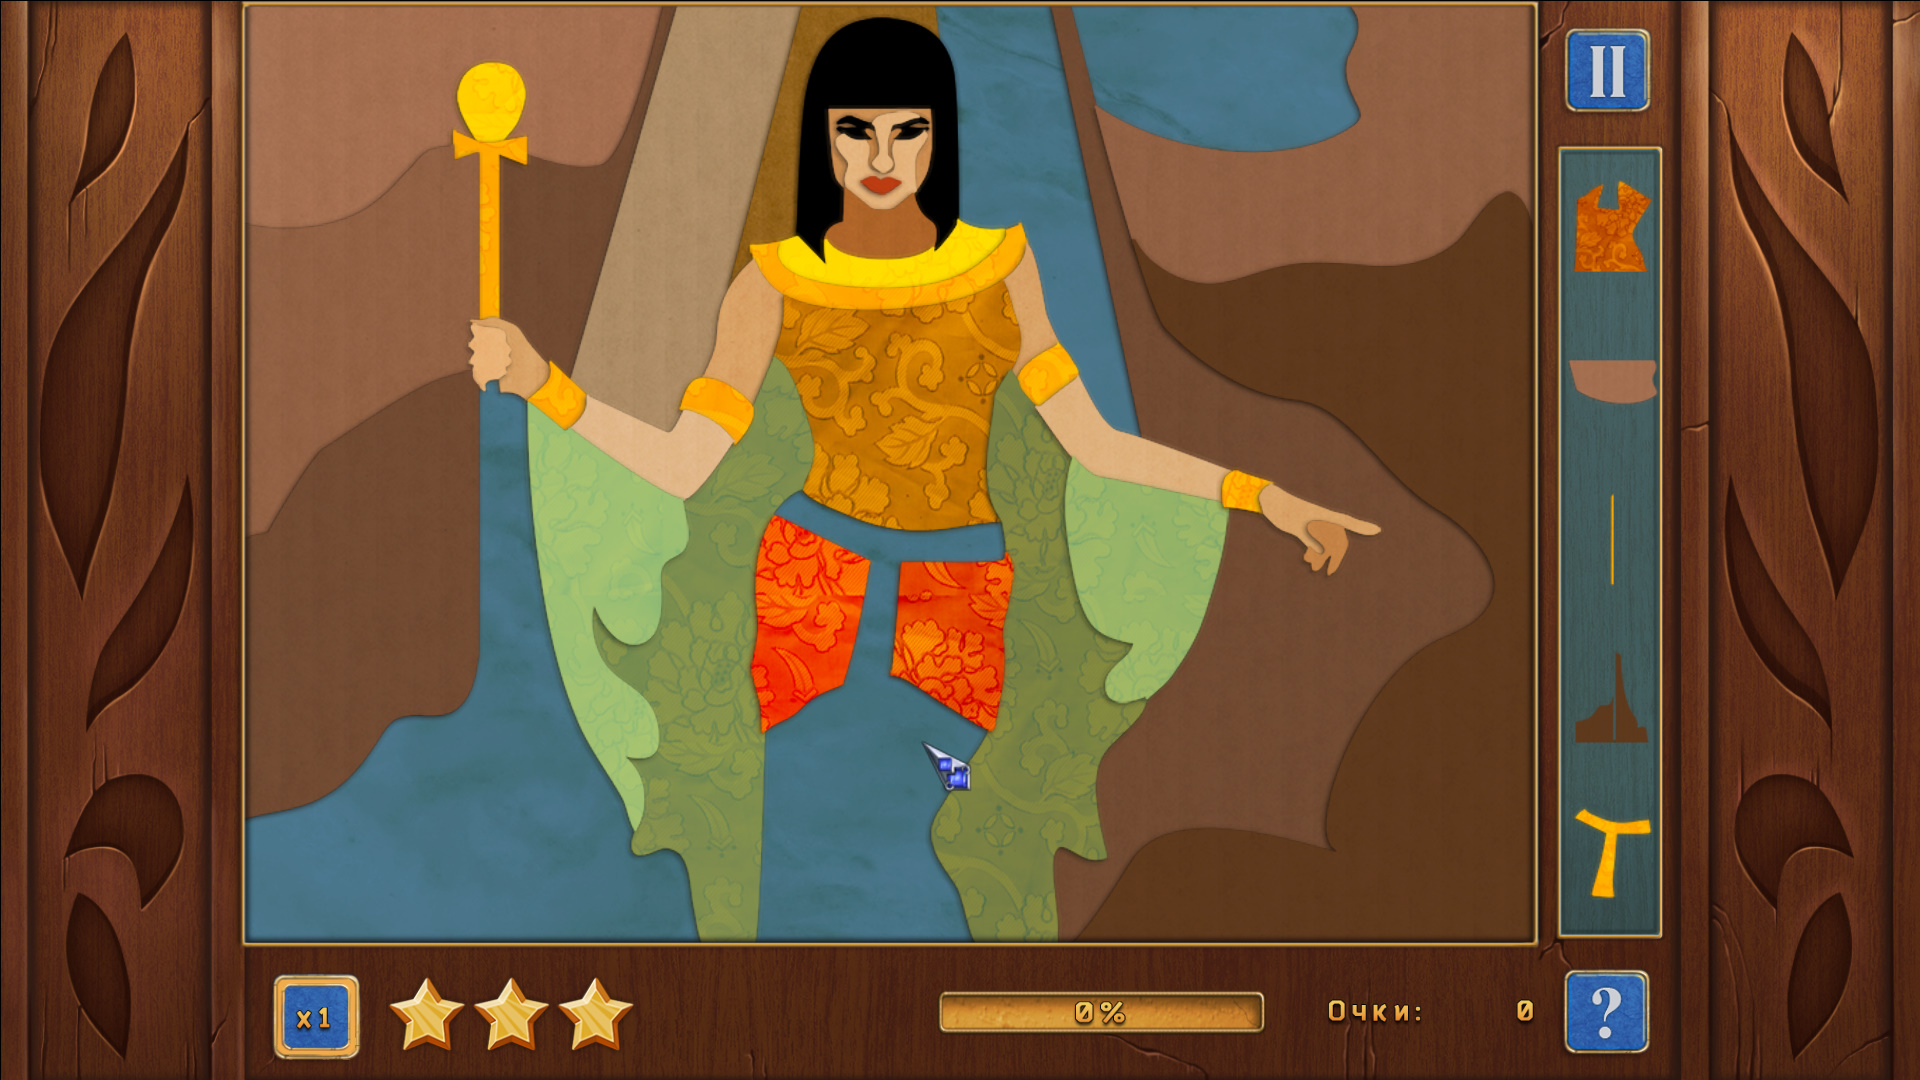 Mosaic Game of Gods III (2019/PC/Русский), Unofficial